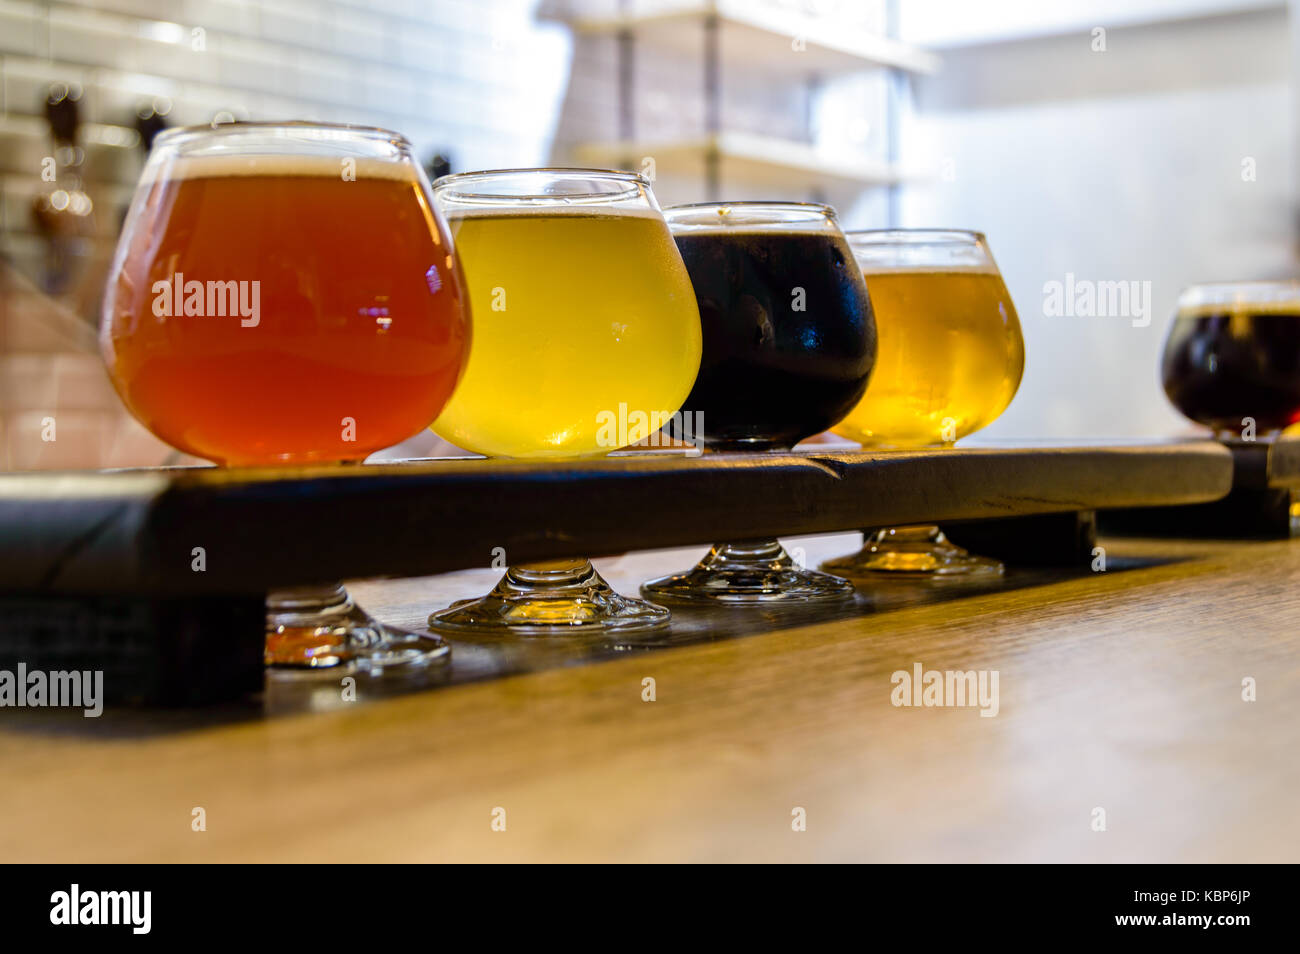 Craft beer tasting in Tijuana, Mexico after an evening of photography. - Stock Image